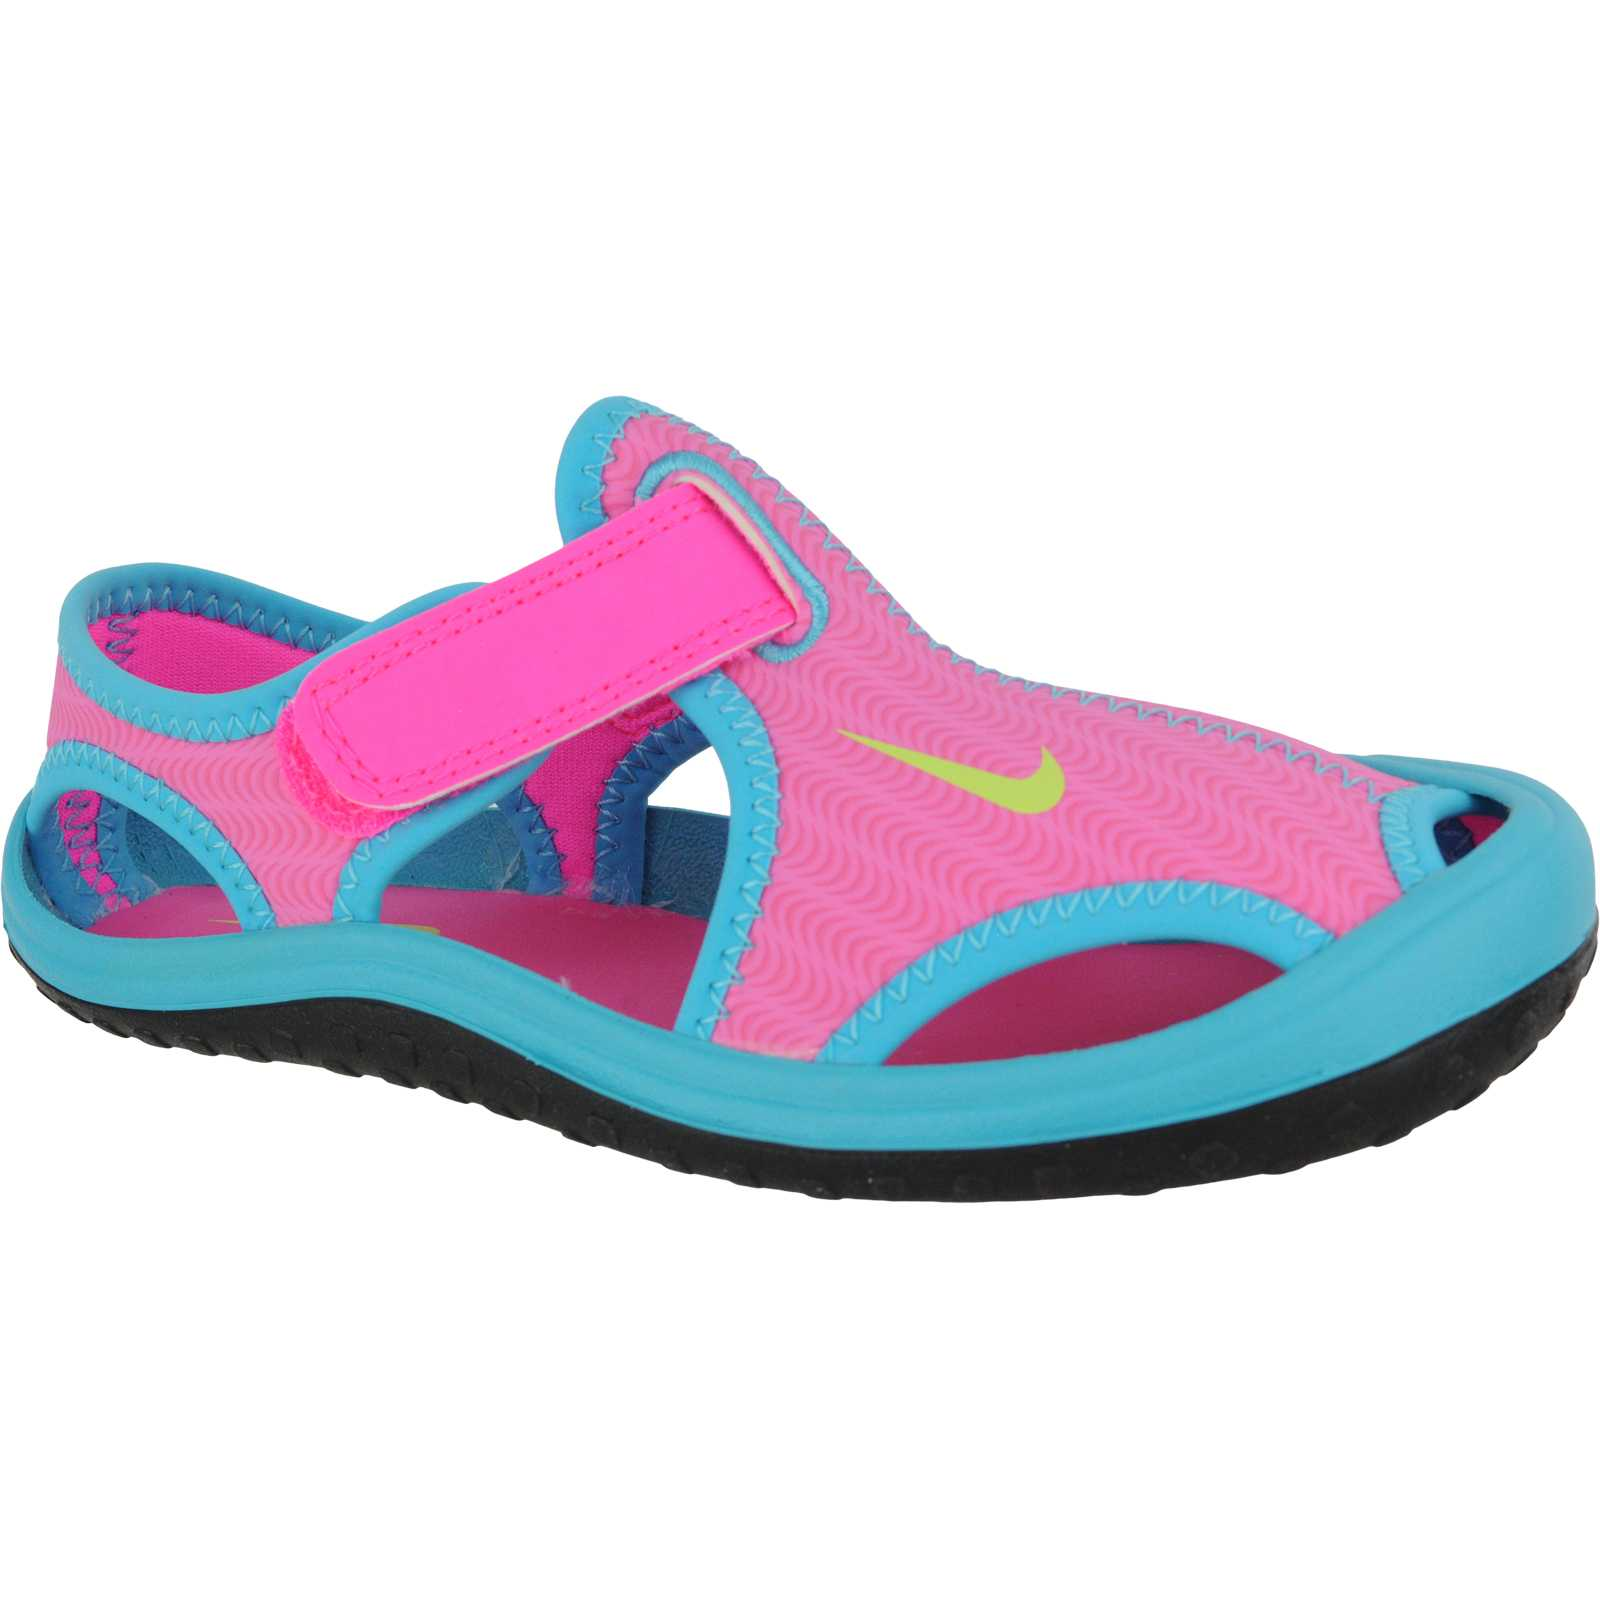 Sandale copii Nike Sunray Protect PS 344992-612